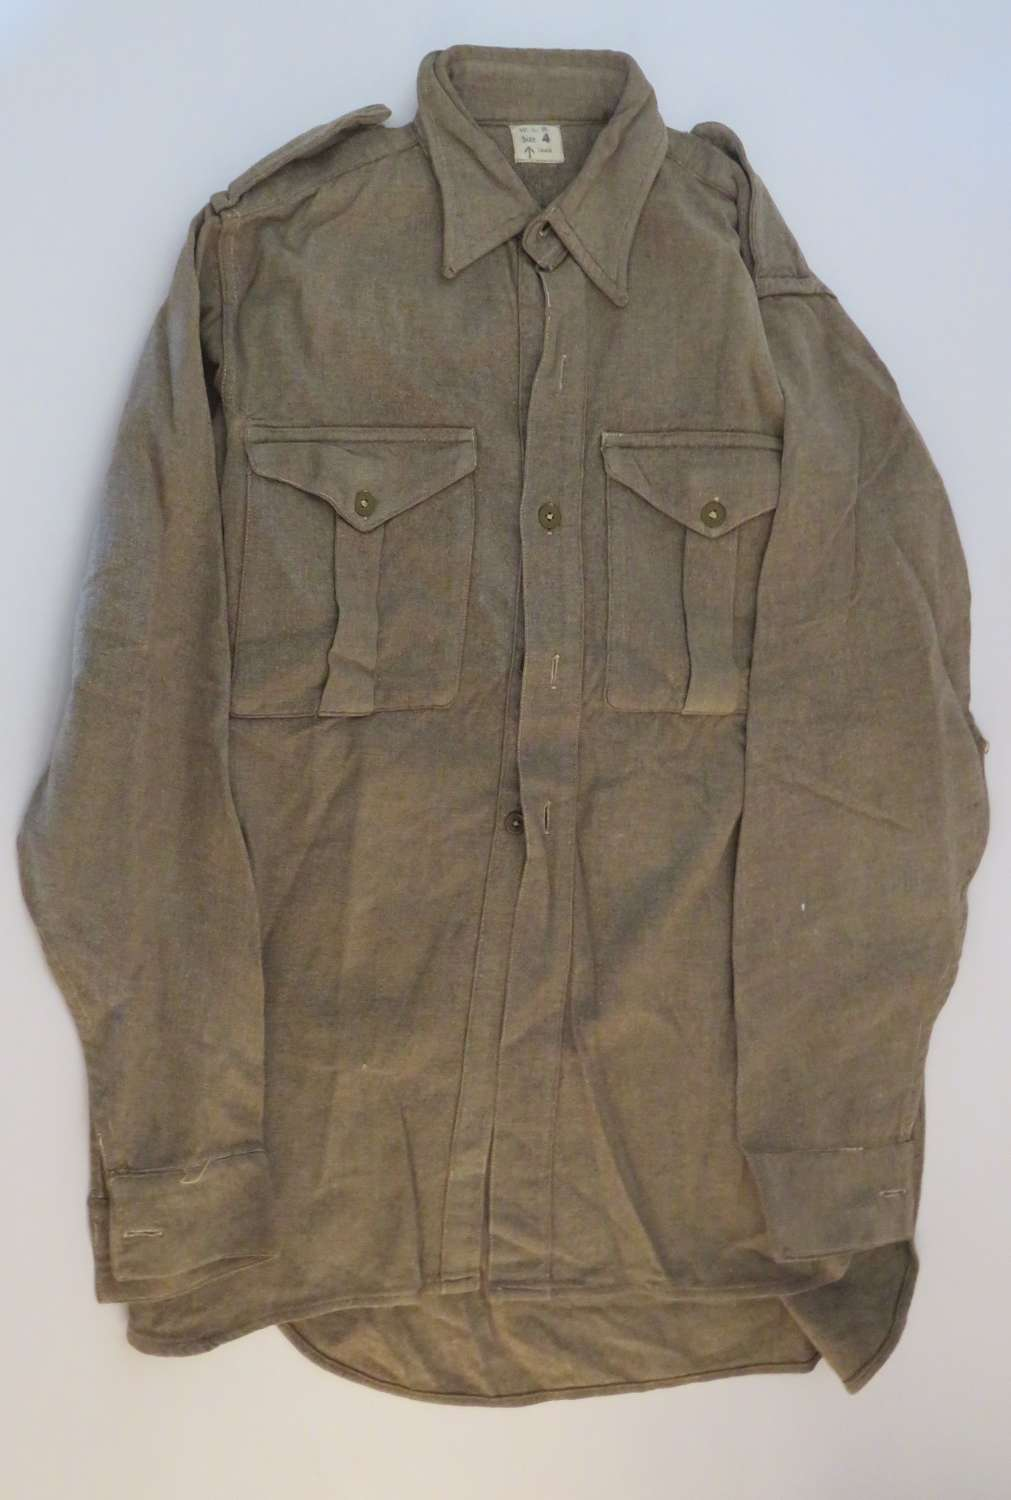 1946 Dated O.Rs British Issue Woollen Shirt